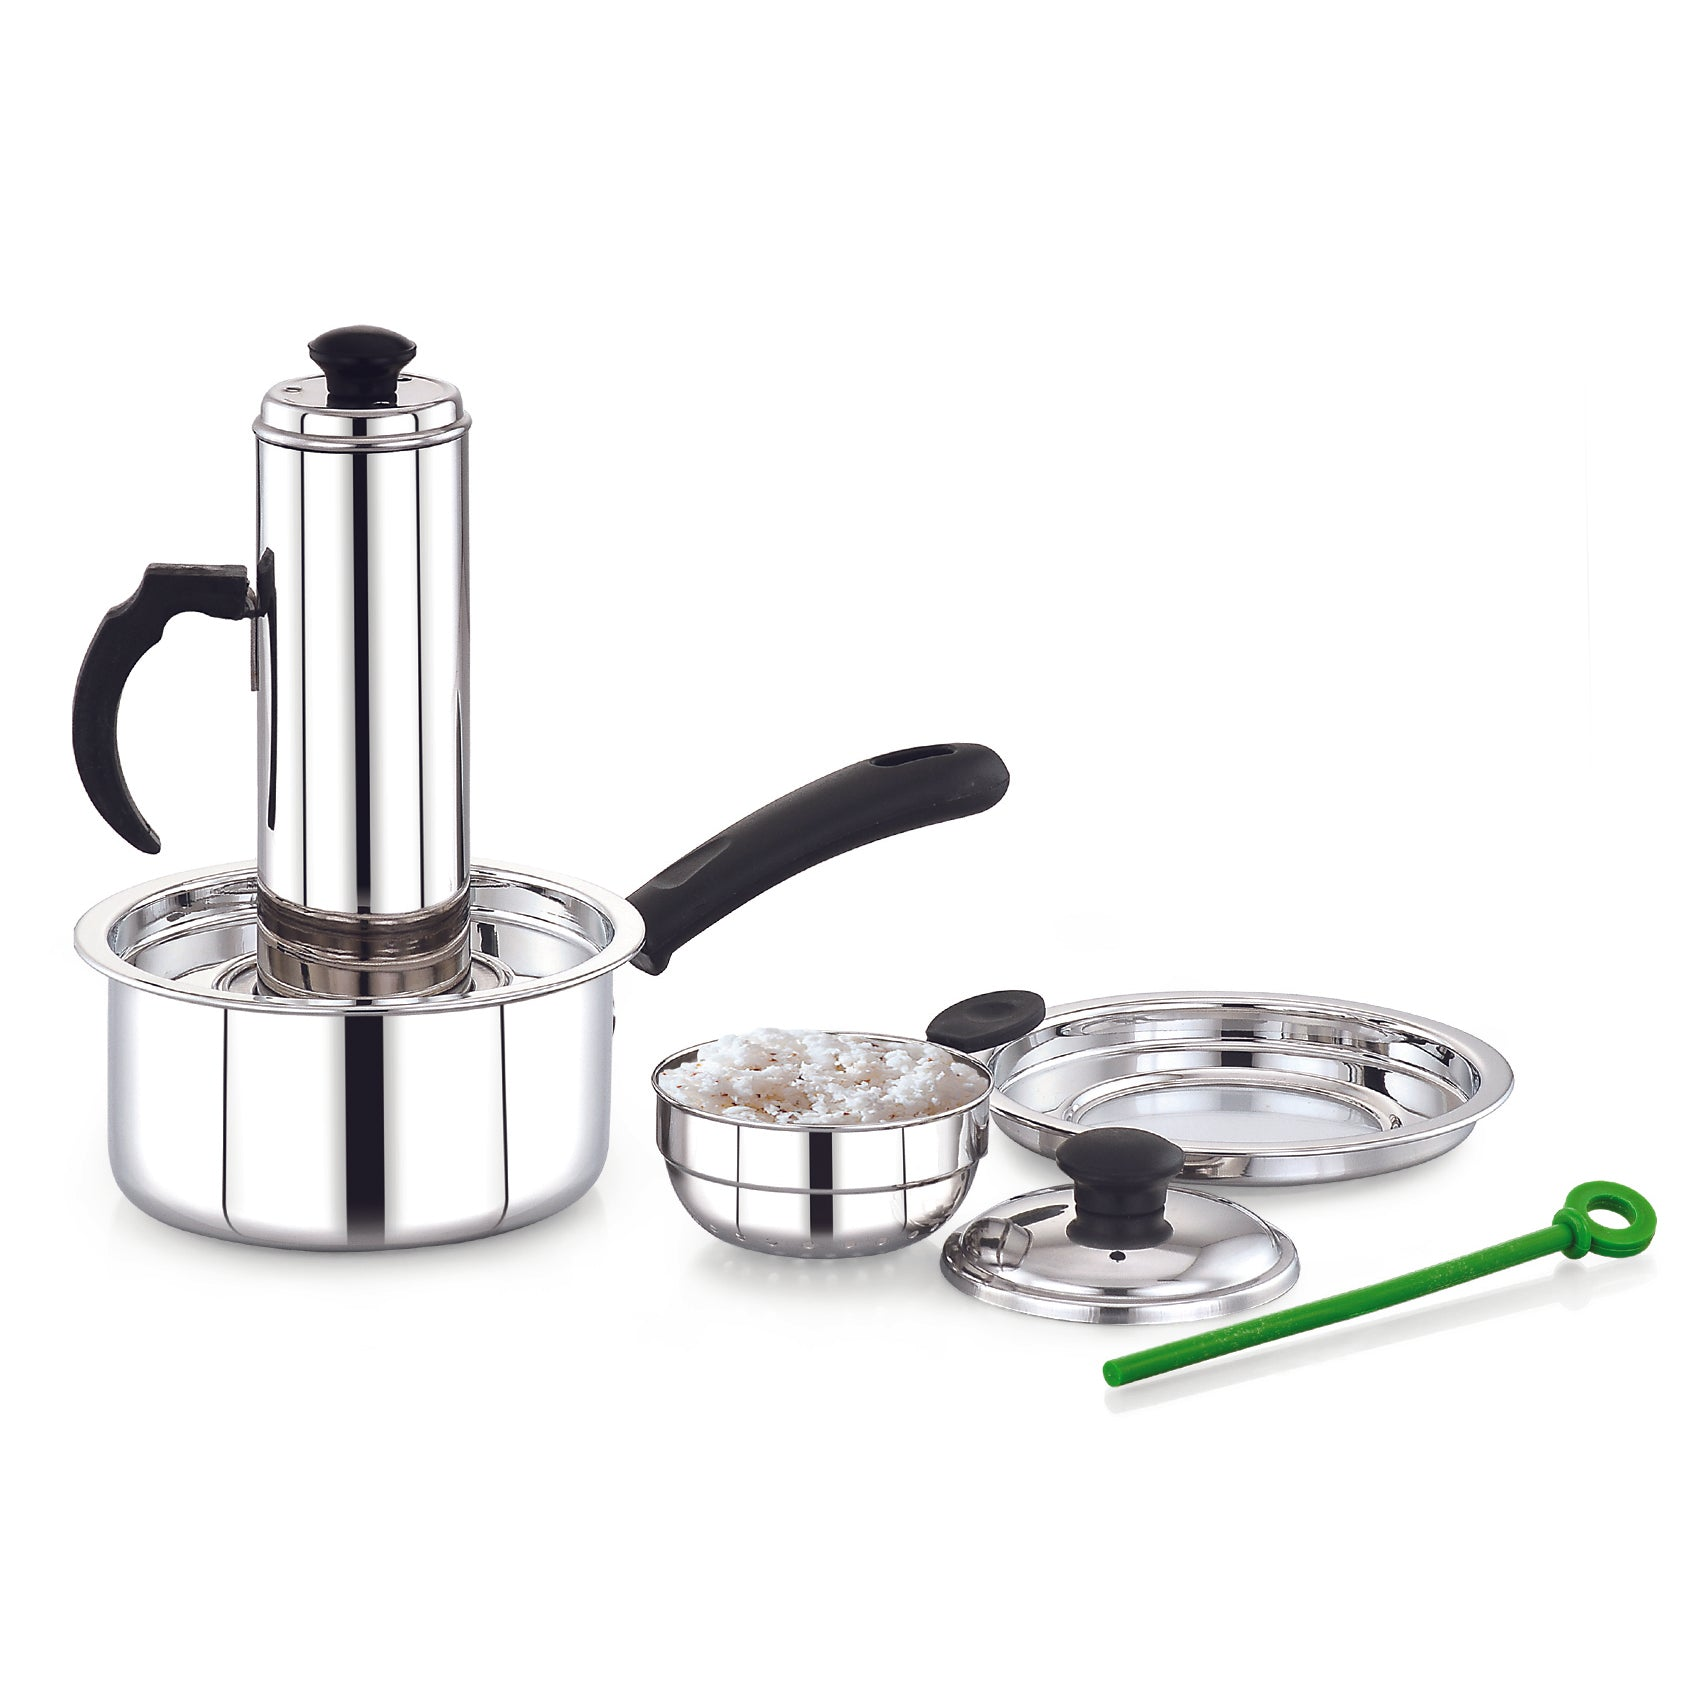 Royalford RF8504  3 In 1 Puttu Maker - Stainless Steel Food Grade Material | Dishwasher Safe, Bakelite Knob & Sturdy Handle | Stainless Steel Stick | Compatible With Hot Plate, Halogen, Gas, & Induction Tops